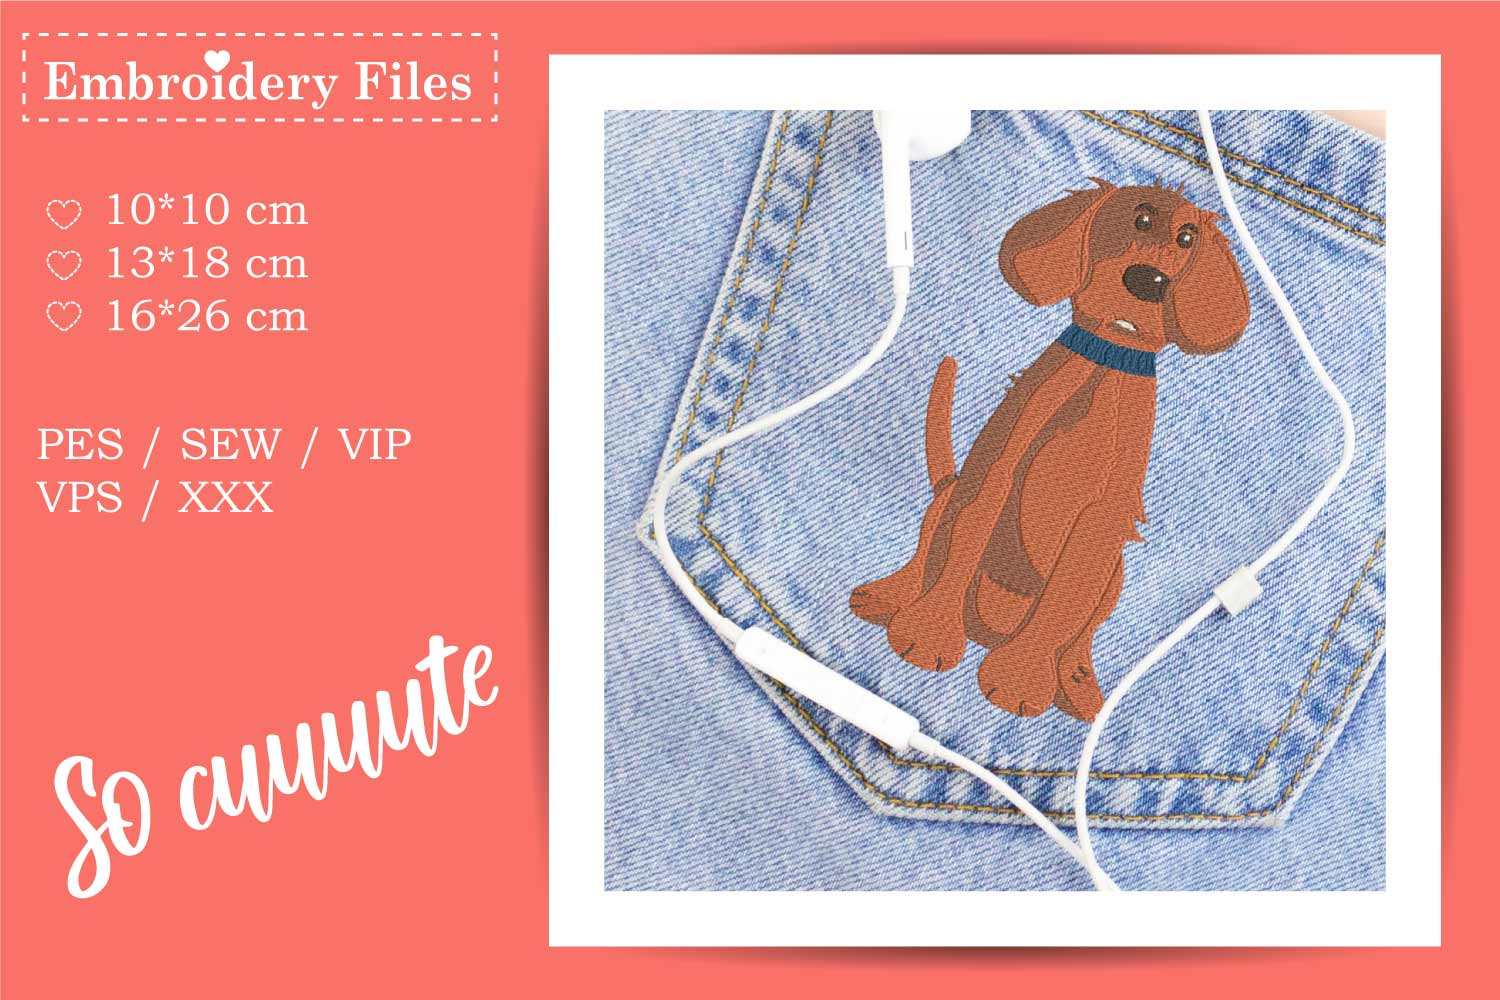 Cute big Dog - Embroidery File for Beginners example image 2